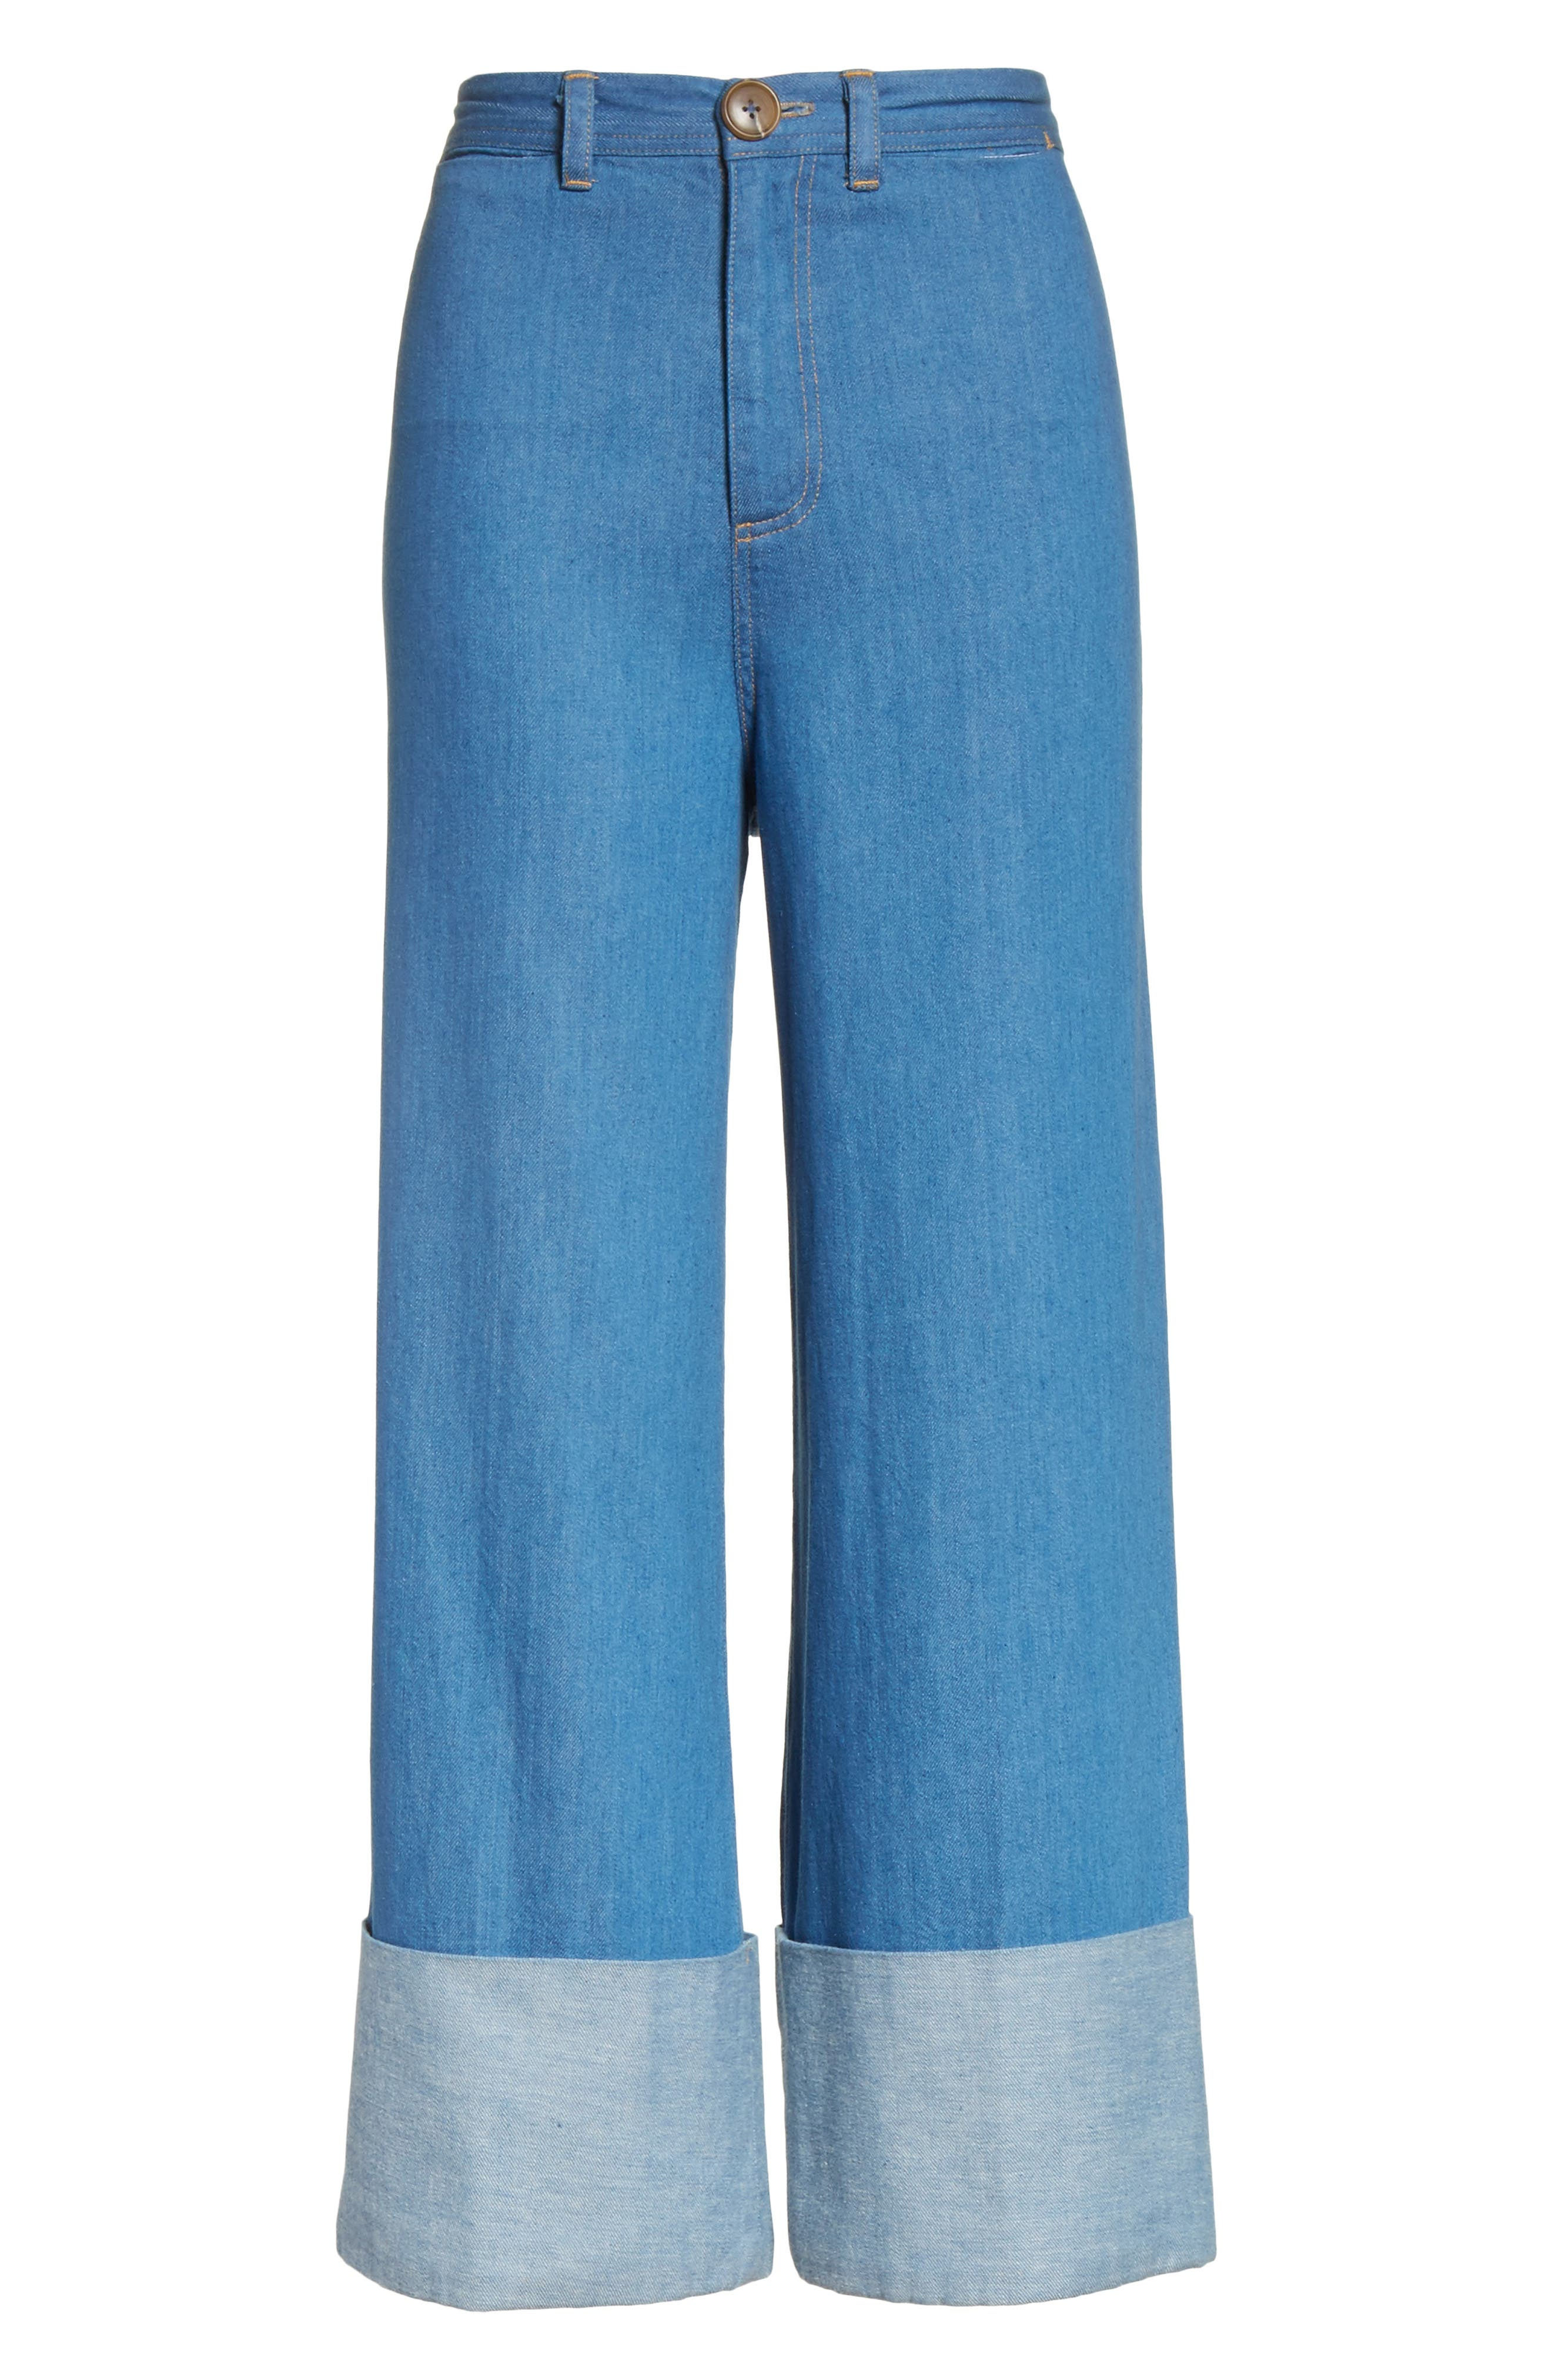 Classic Cuffed Wide Leg Jeans,                             Alternate thumbnail 6, color,                             404